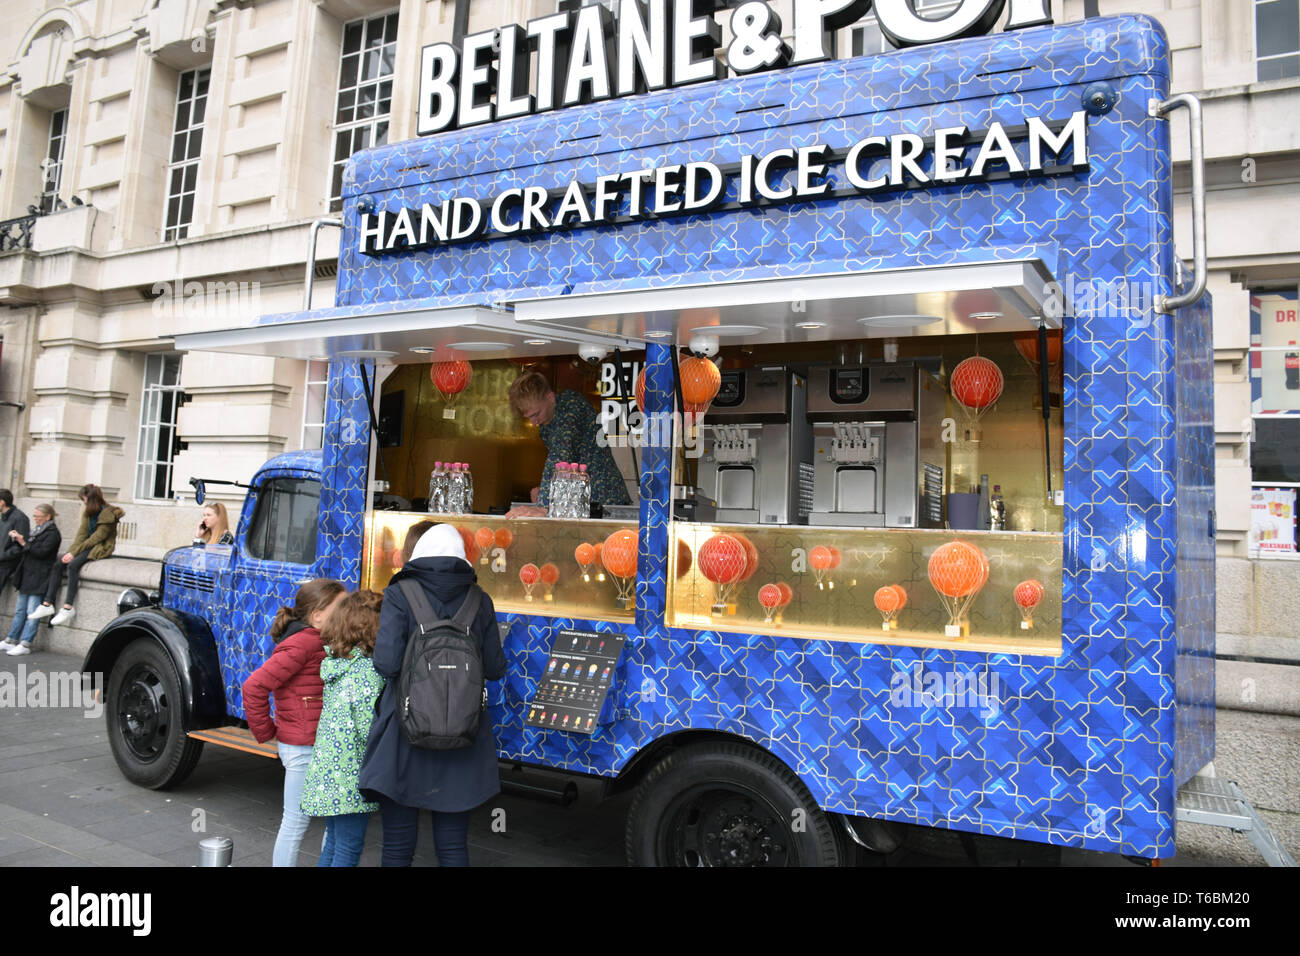 Ice cream van in front of the old County Hall building on the South Bank, London April 2019 UK - Stock Image